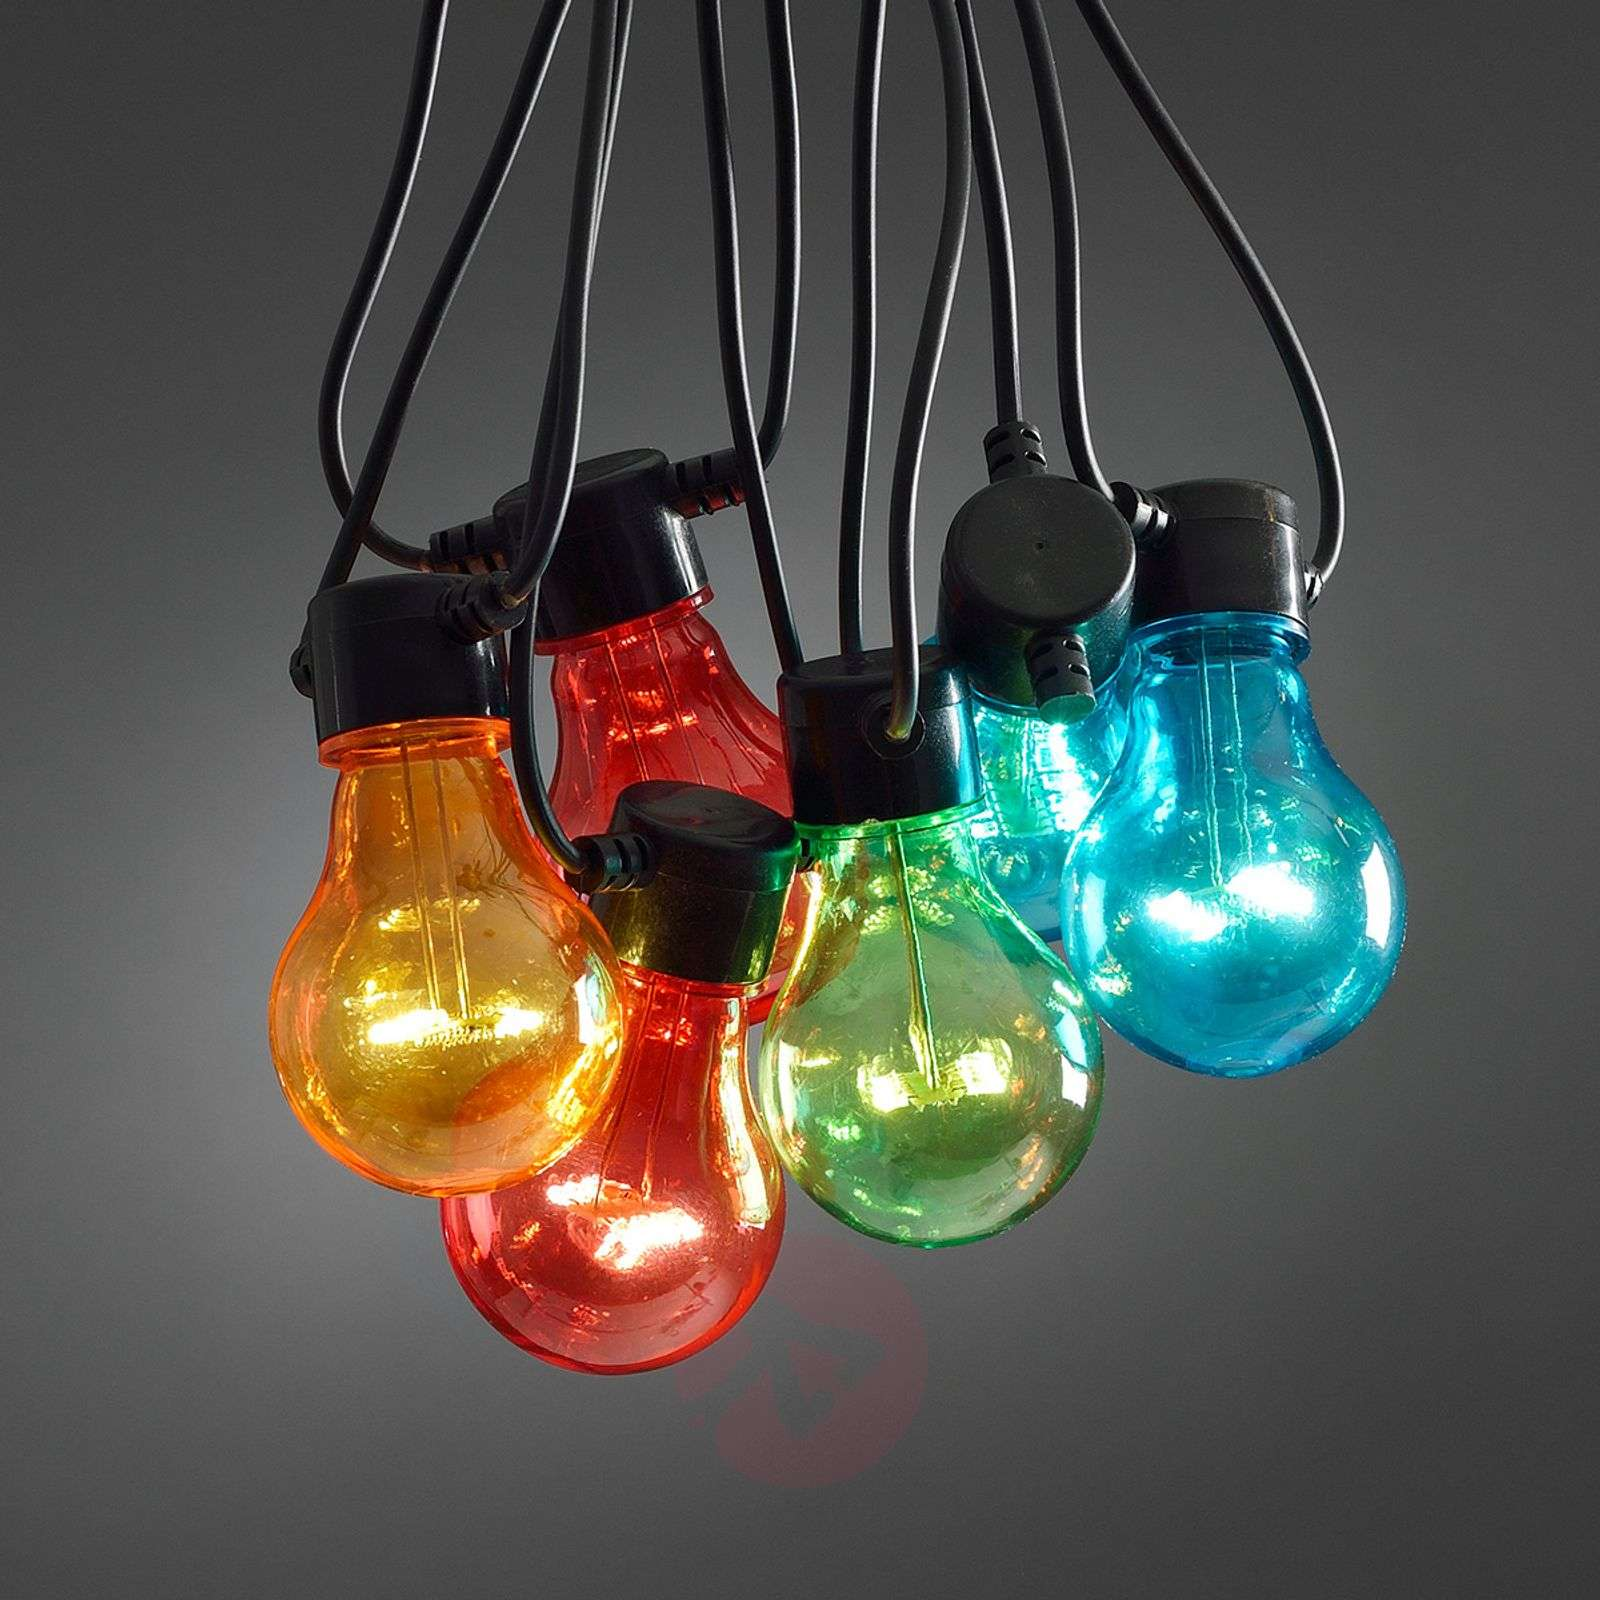 Guirlande lumineuse LED de base, multicolore-5524435-01